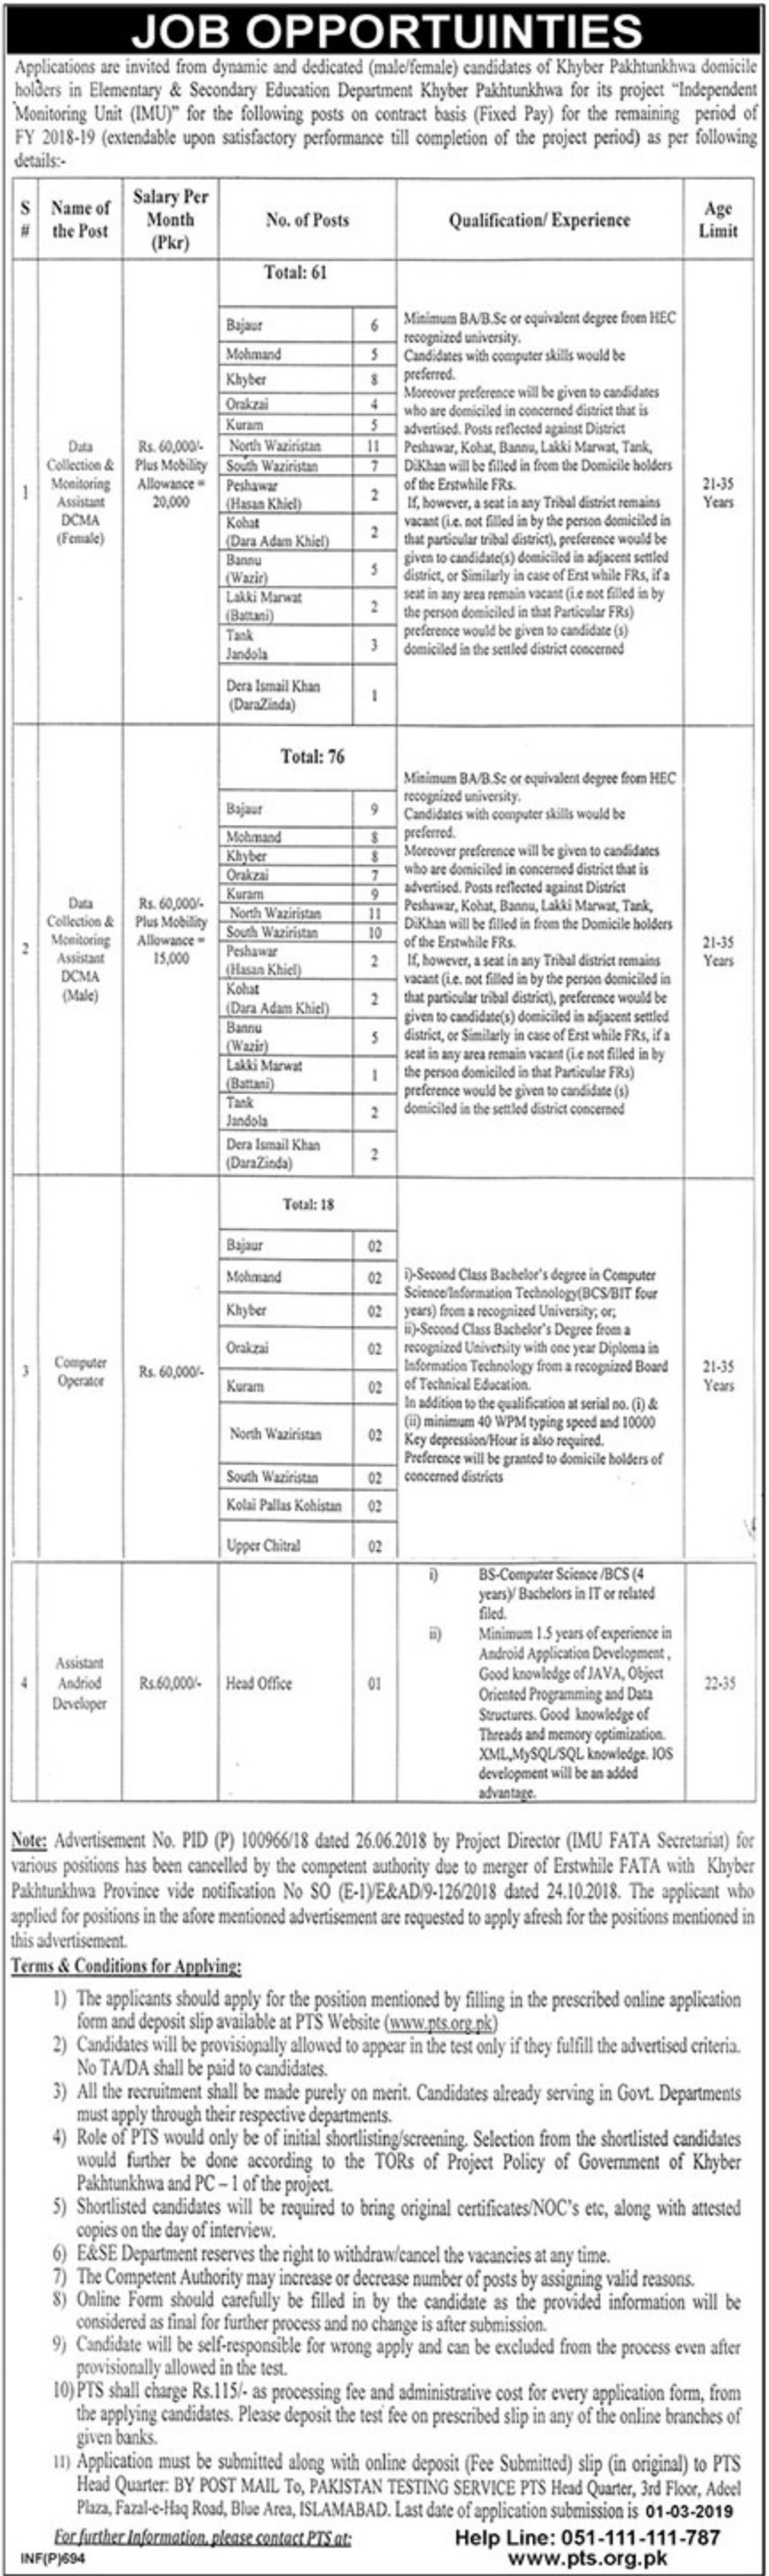 ESED Jobs 2019 KPK Elementary & Secondary Education Department Latest